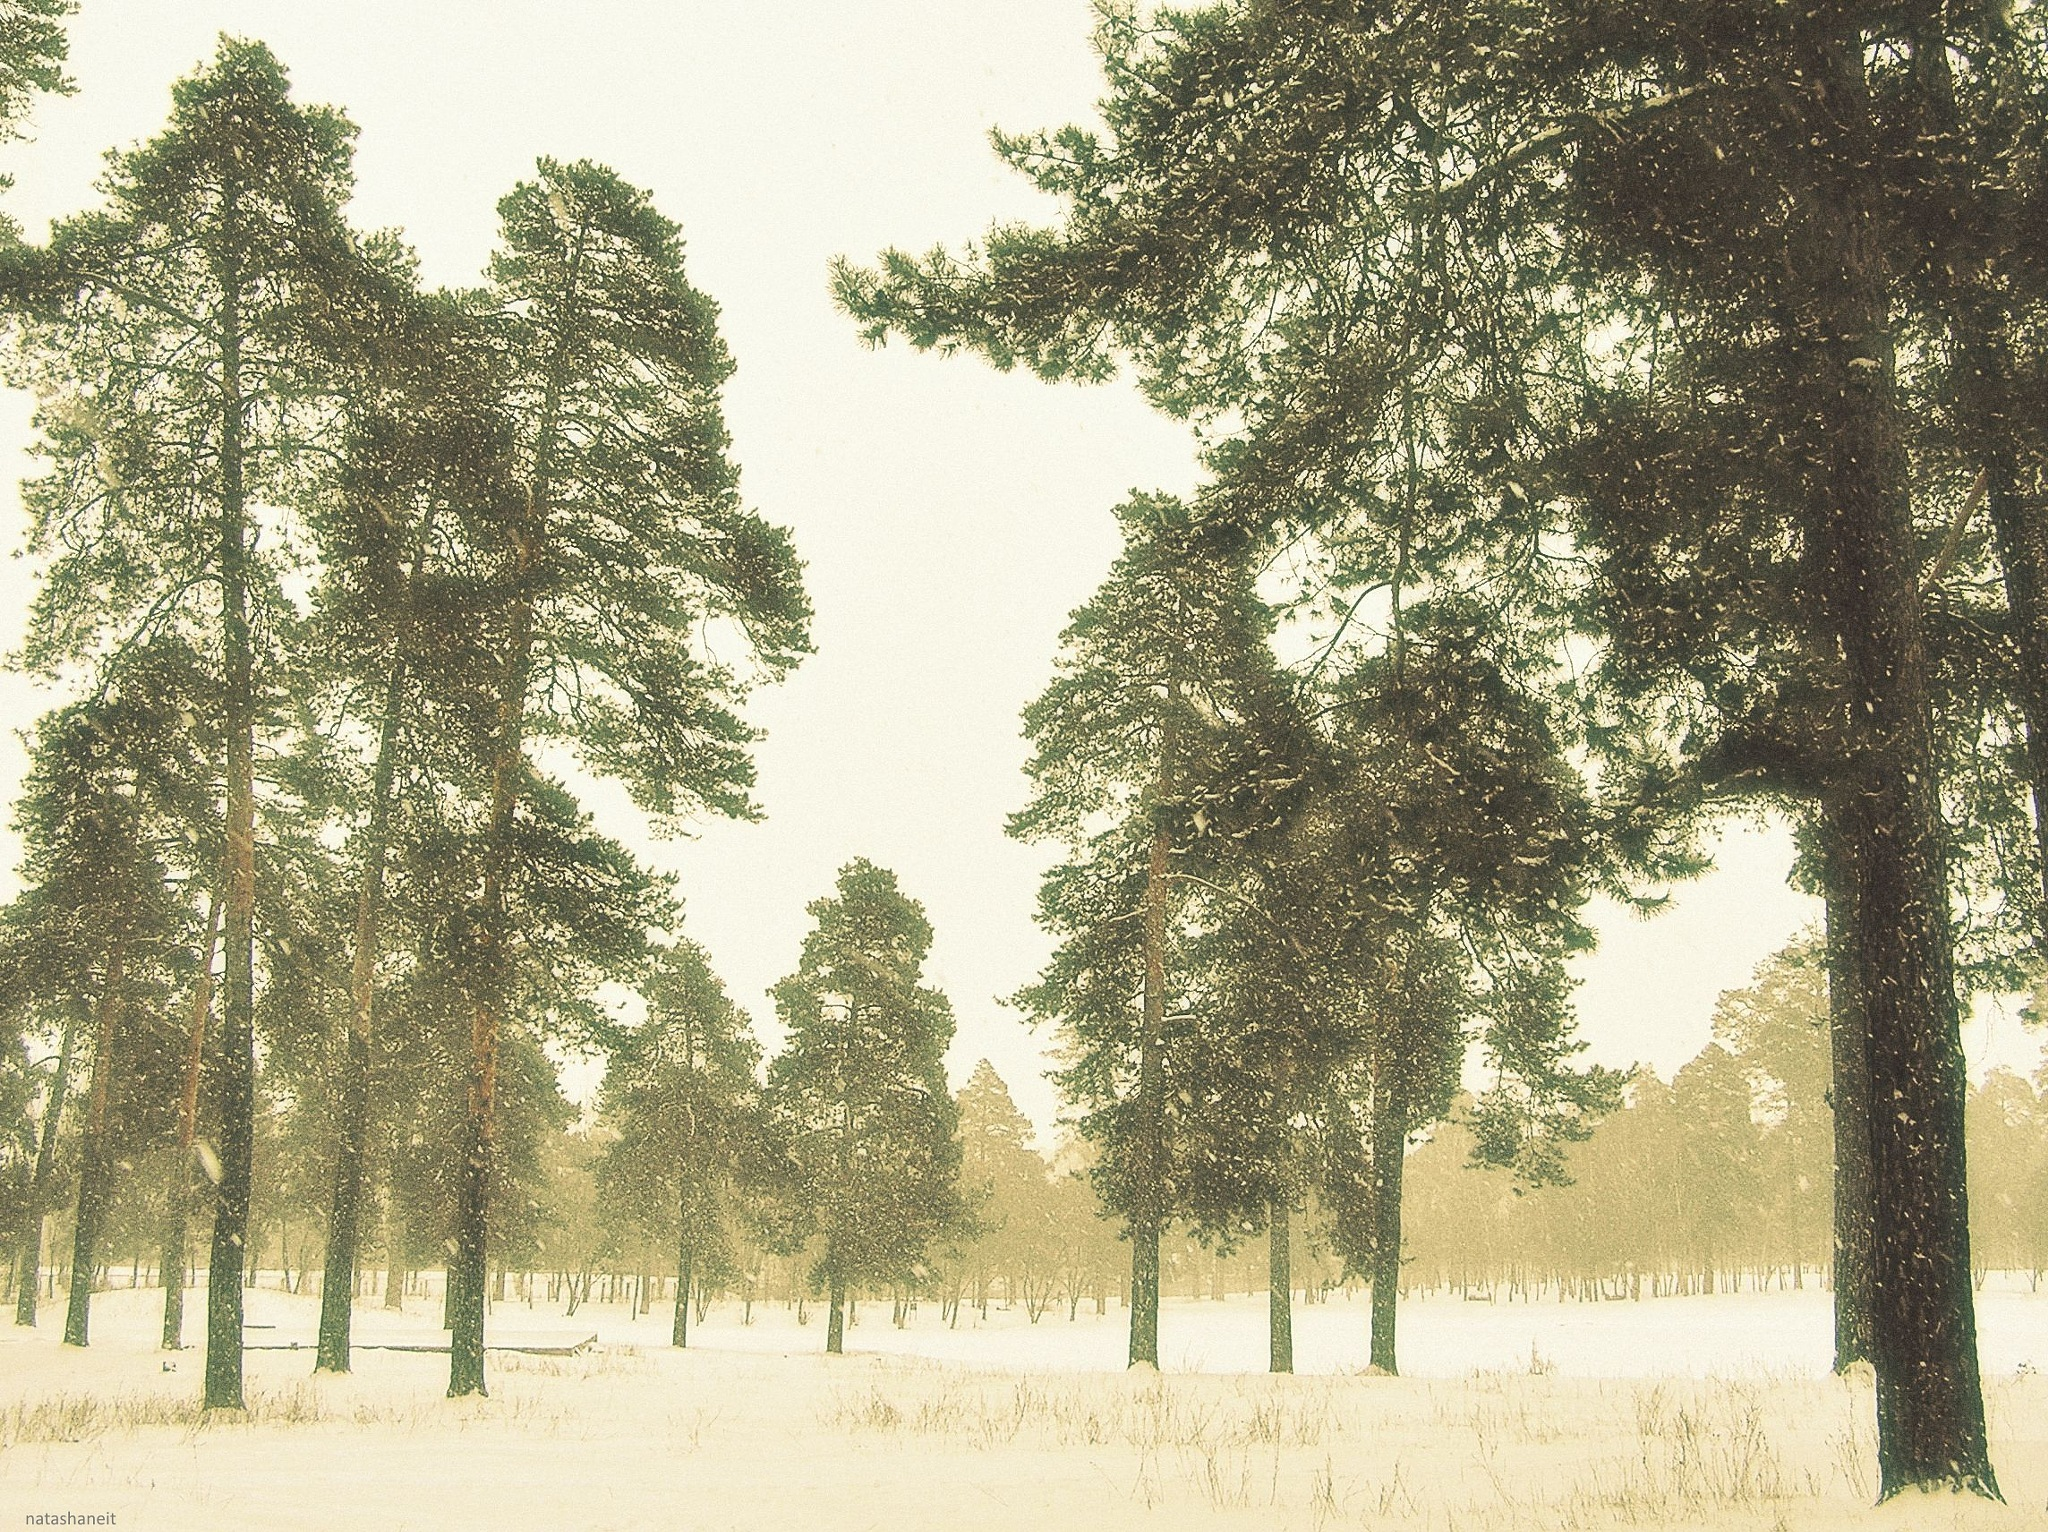 Snow day in the forest park by natashaneit